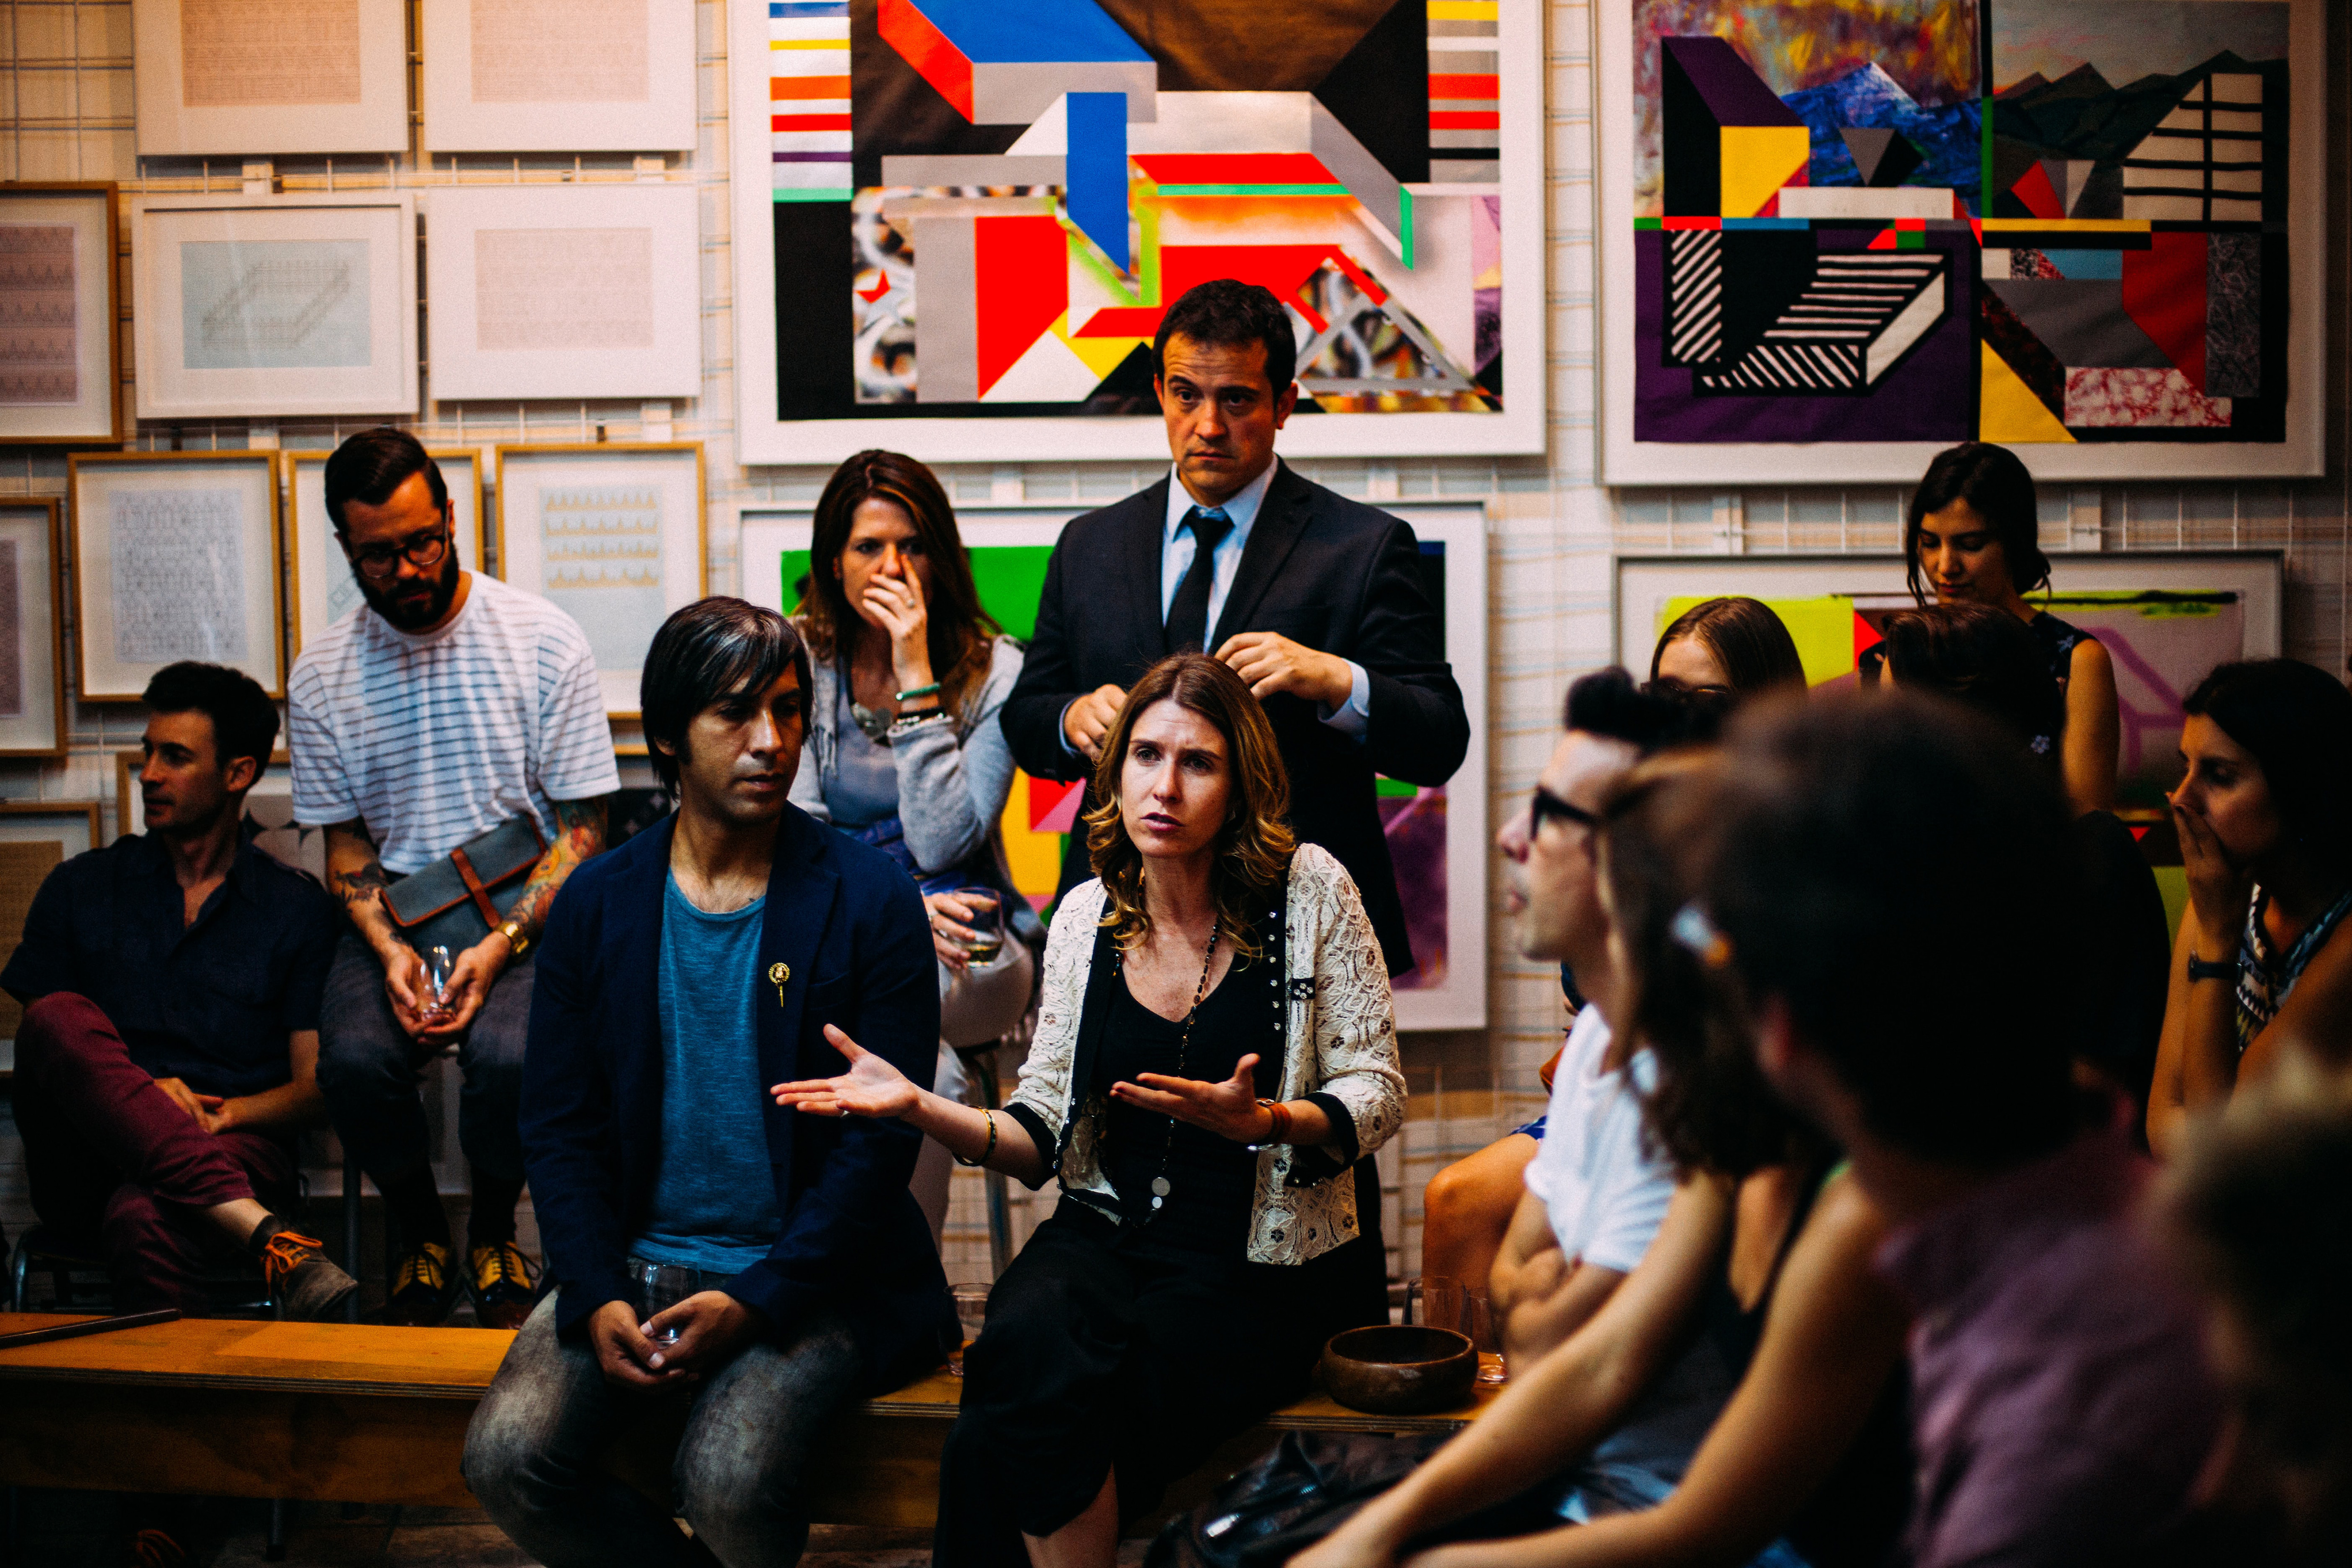 A group of young adults holding a discussion